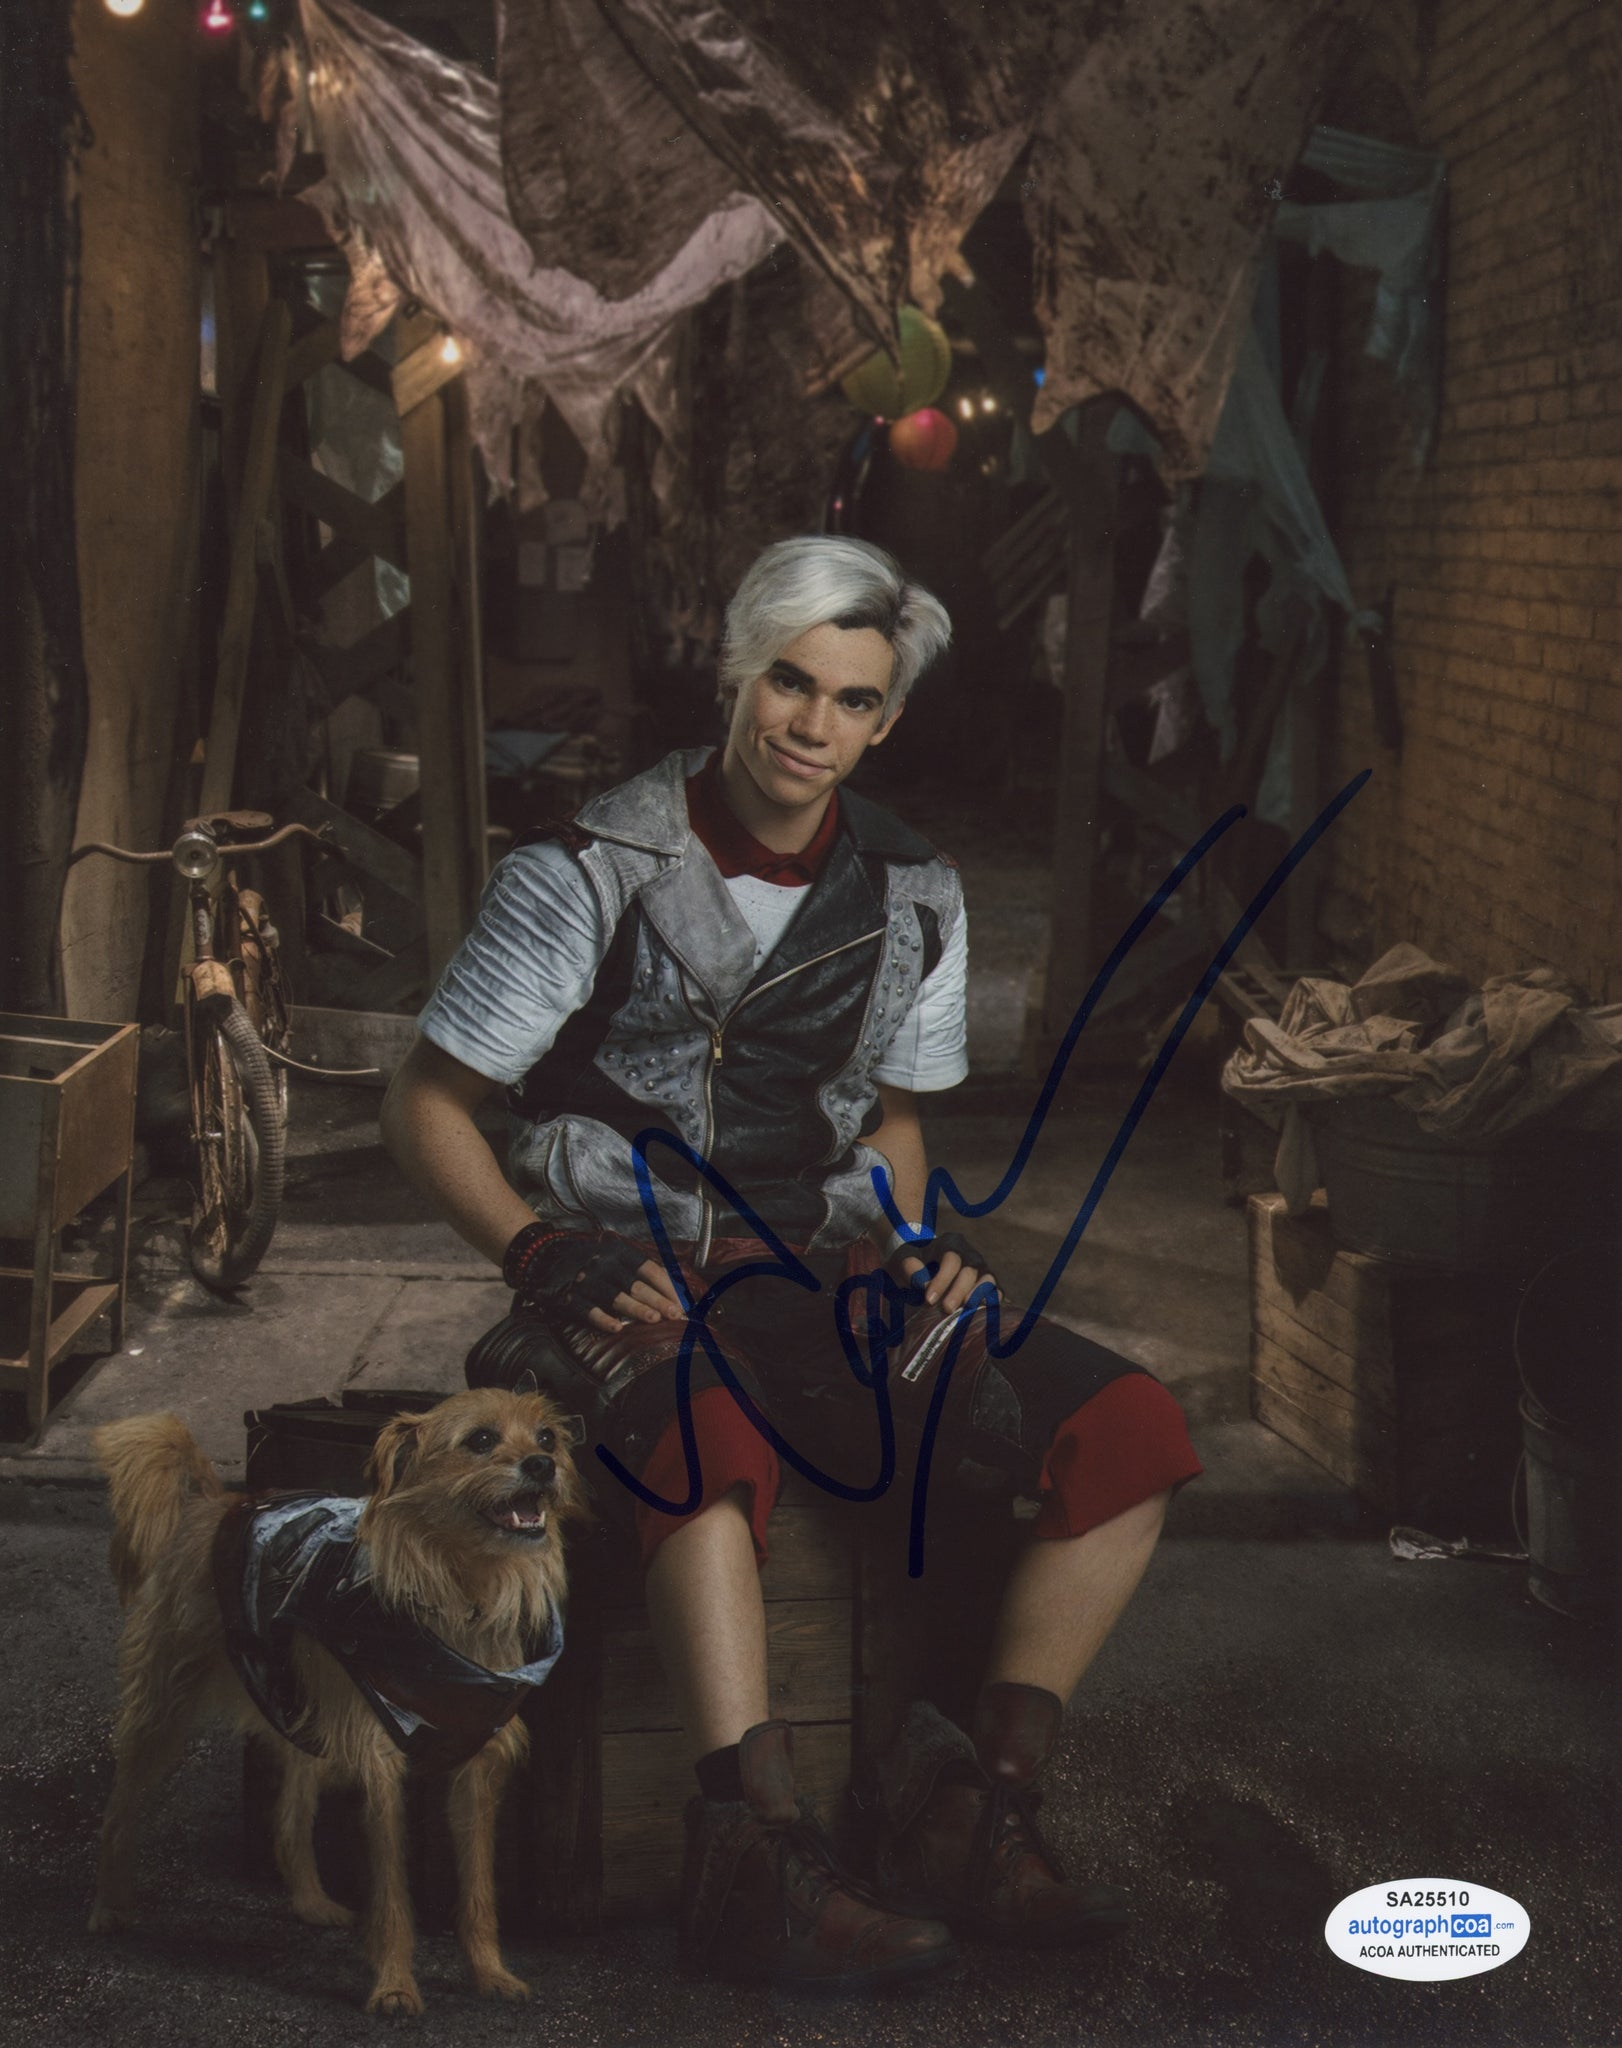 Cameron Boyce Descendants Signed Autograph 8x10 Photo ACOA